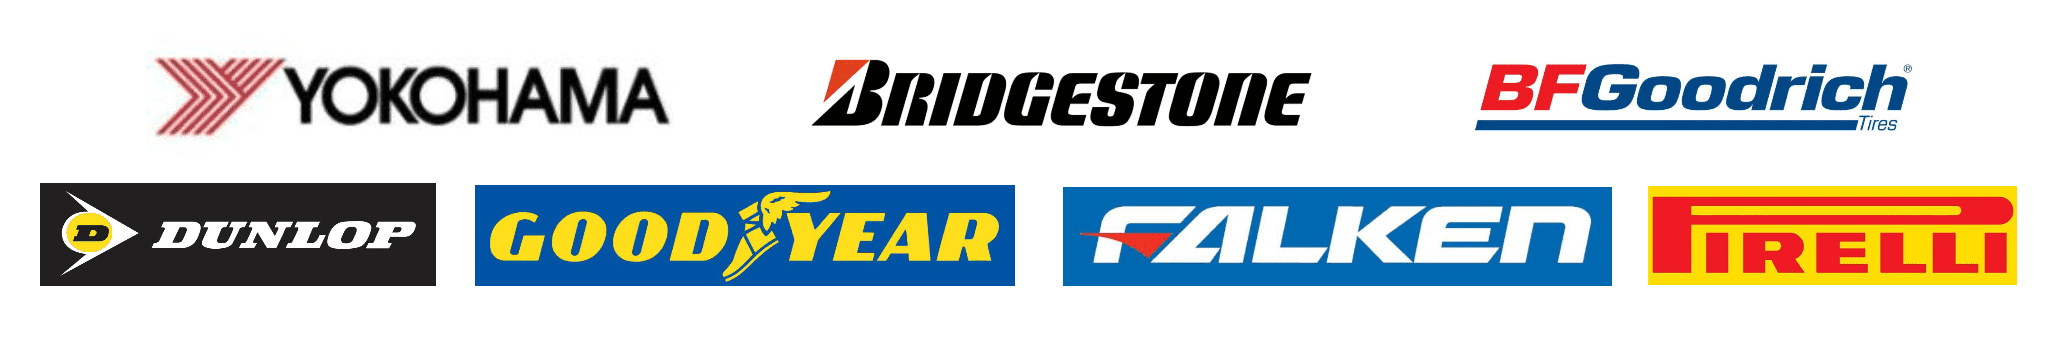 gs-mechanical-tyre-brands